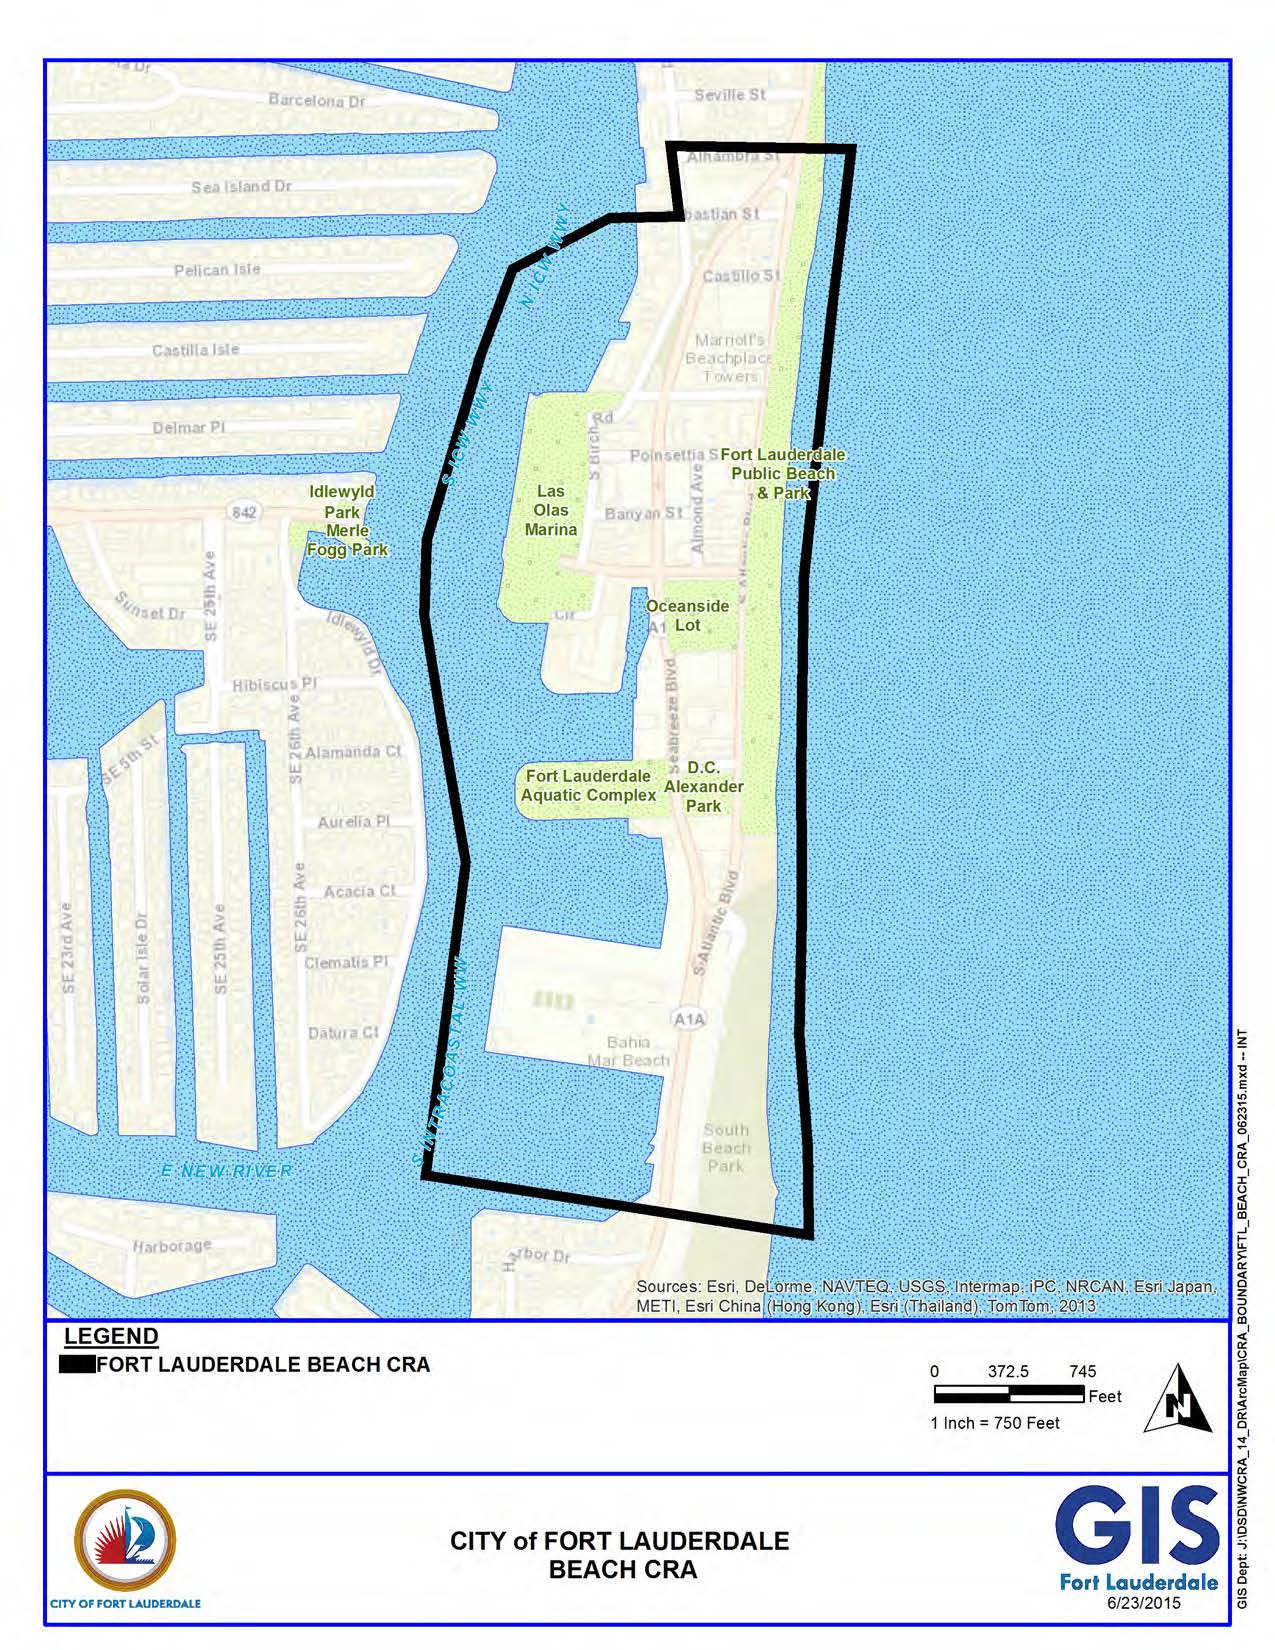 Map Of Fort Lauderdale Florida.City Of Fort Lauderdale Fl Beach Cra Boundary Map